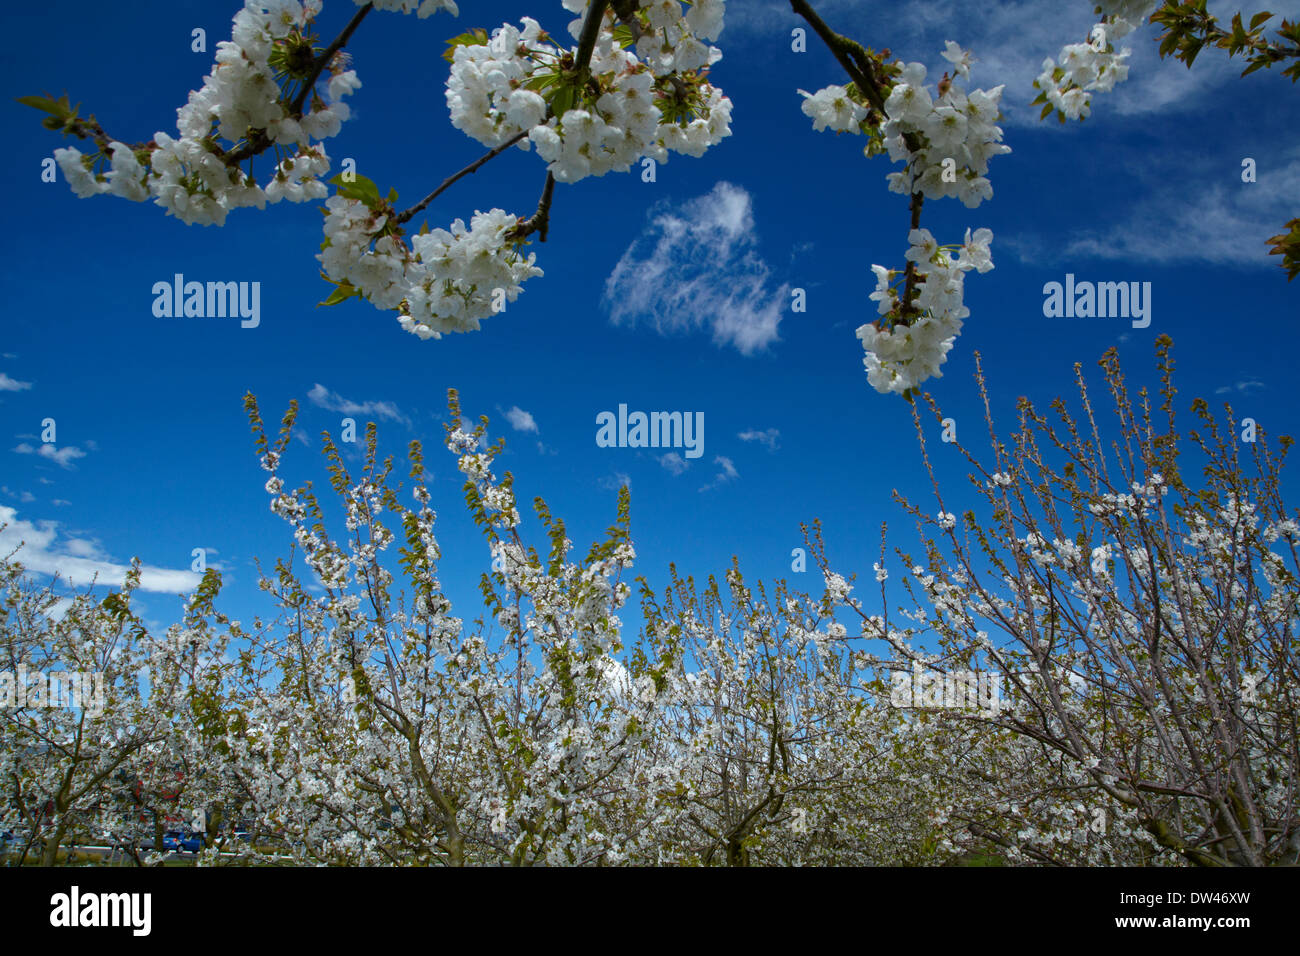 Spring blossom on fruit trees, Westwood Orchard, Blenheim, Marlborough, South Island, New Zealand - Stock Image